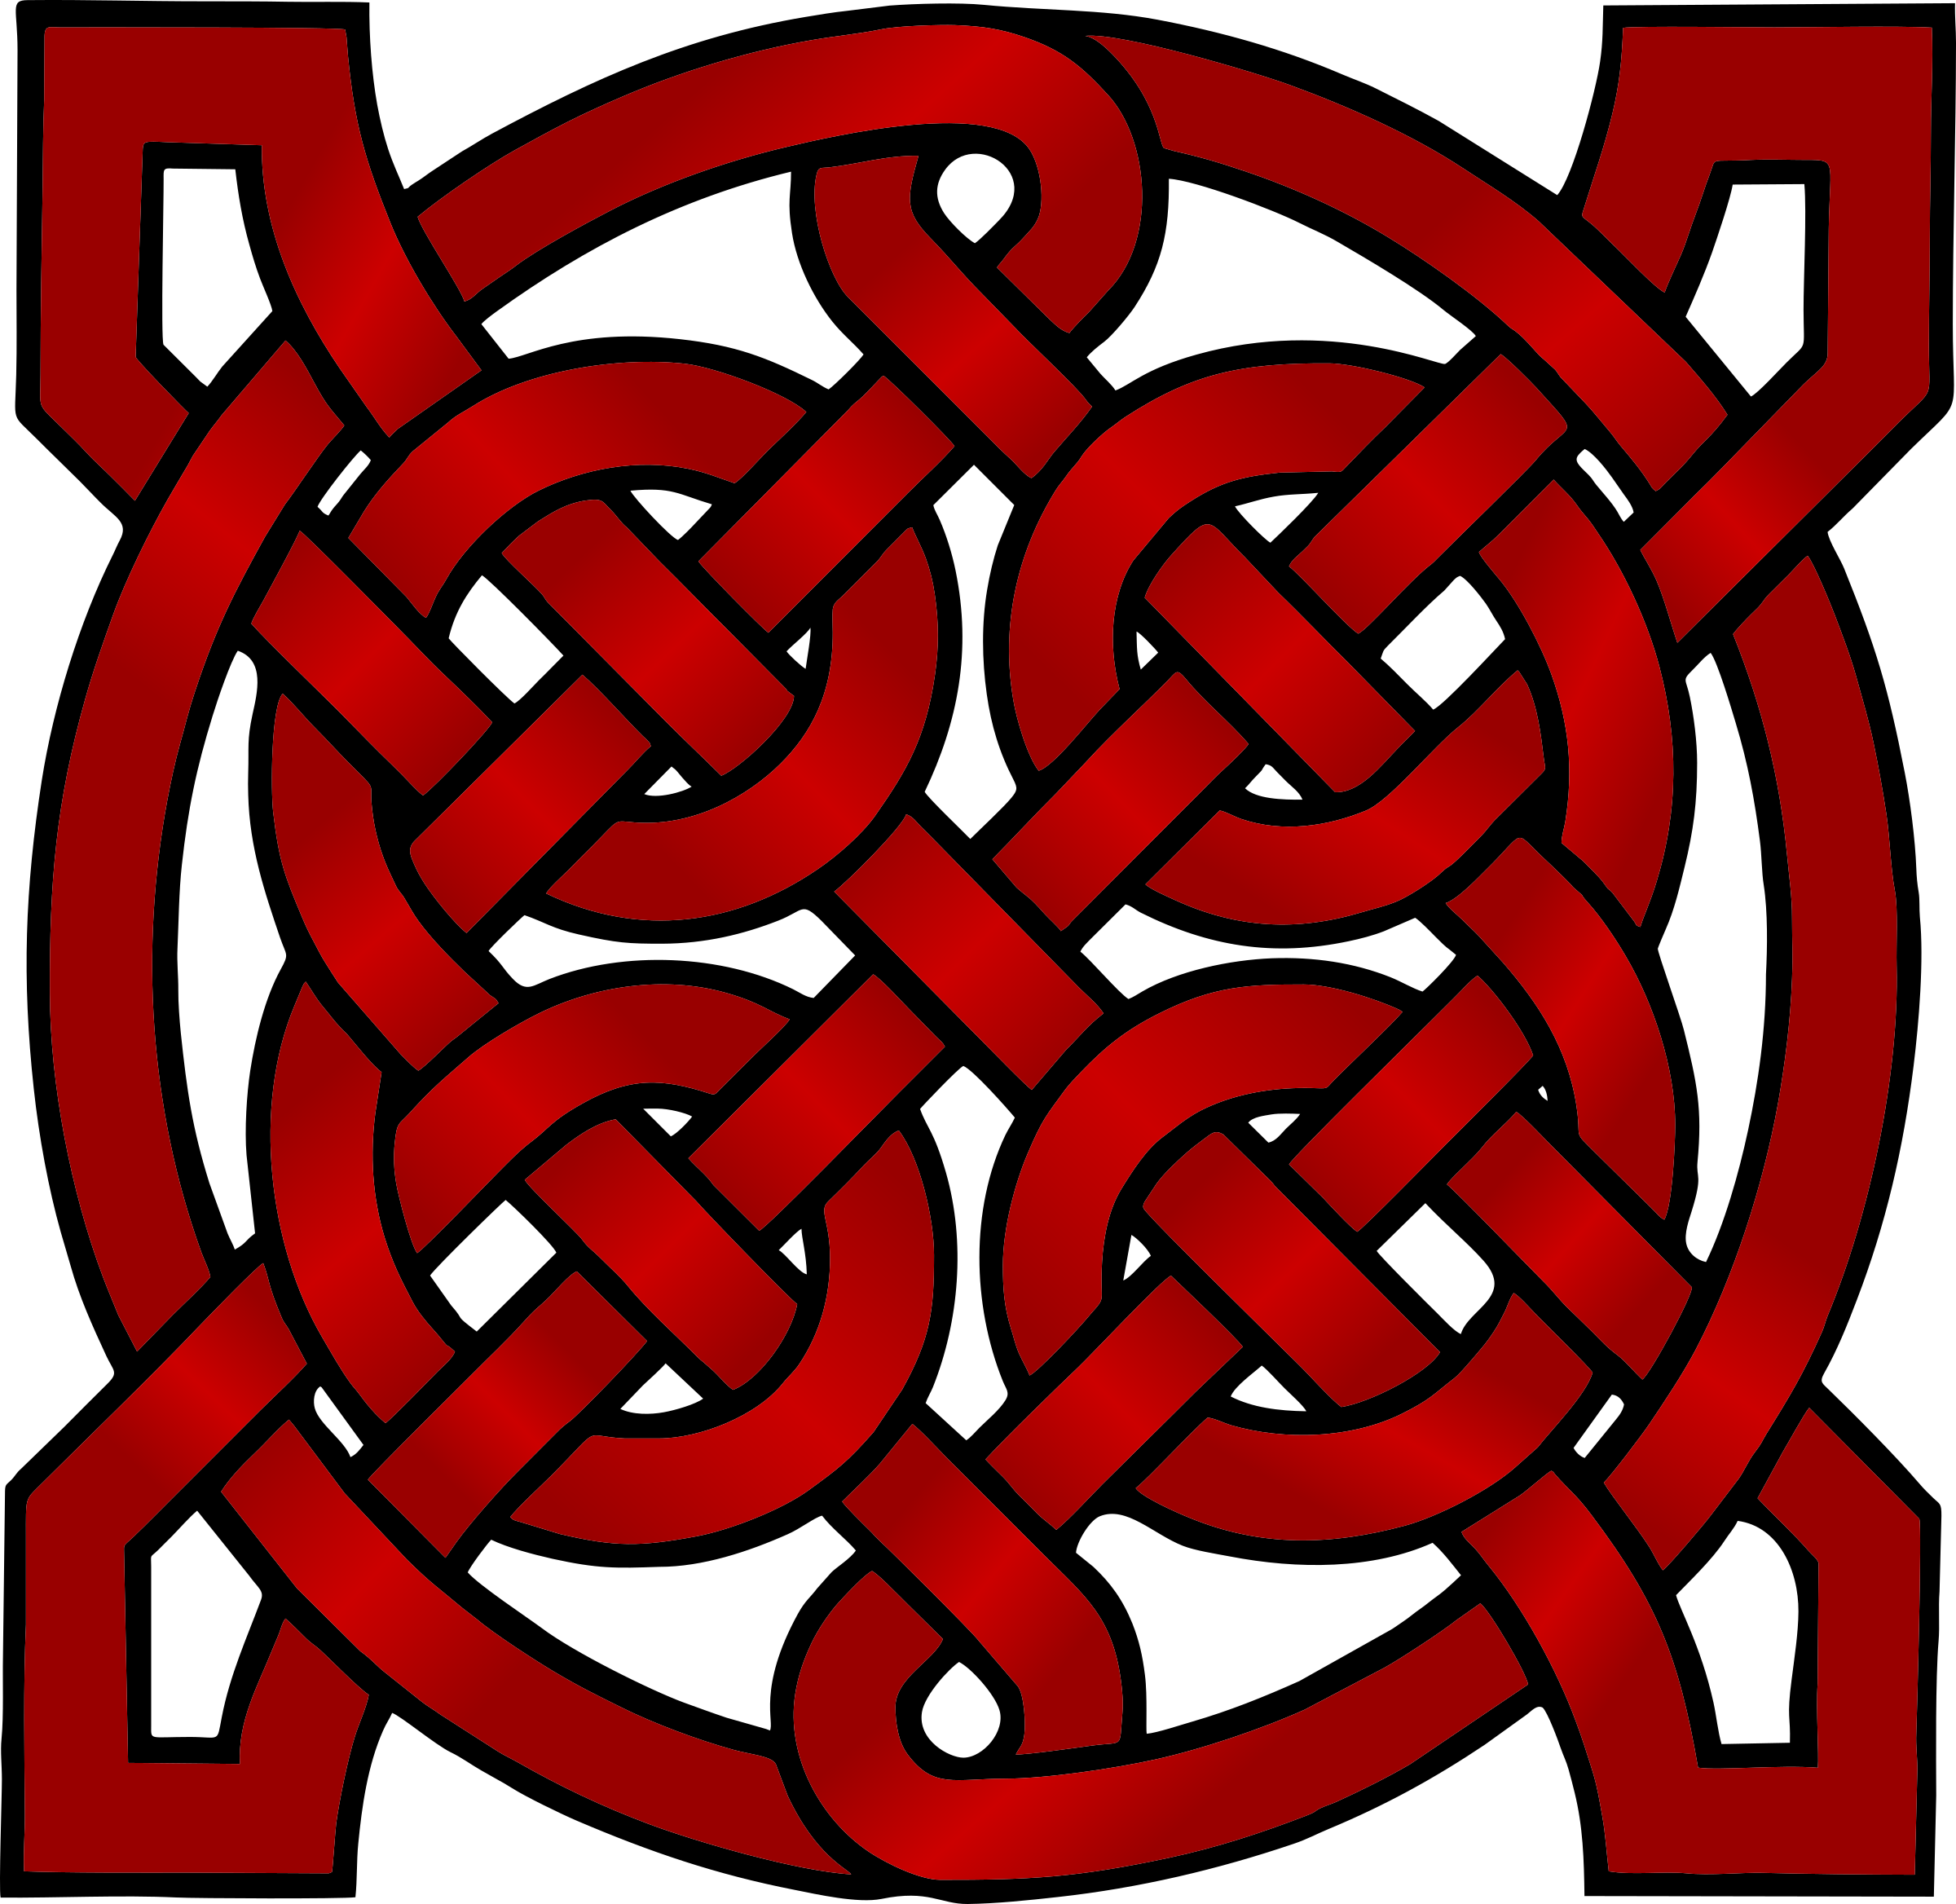 Celtic Mandala by gustavorezende